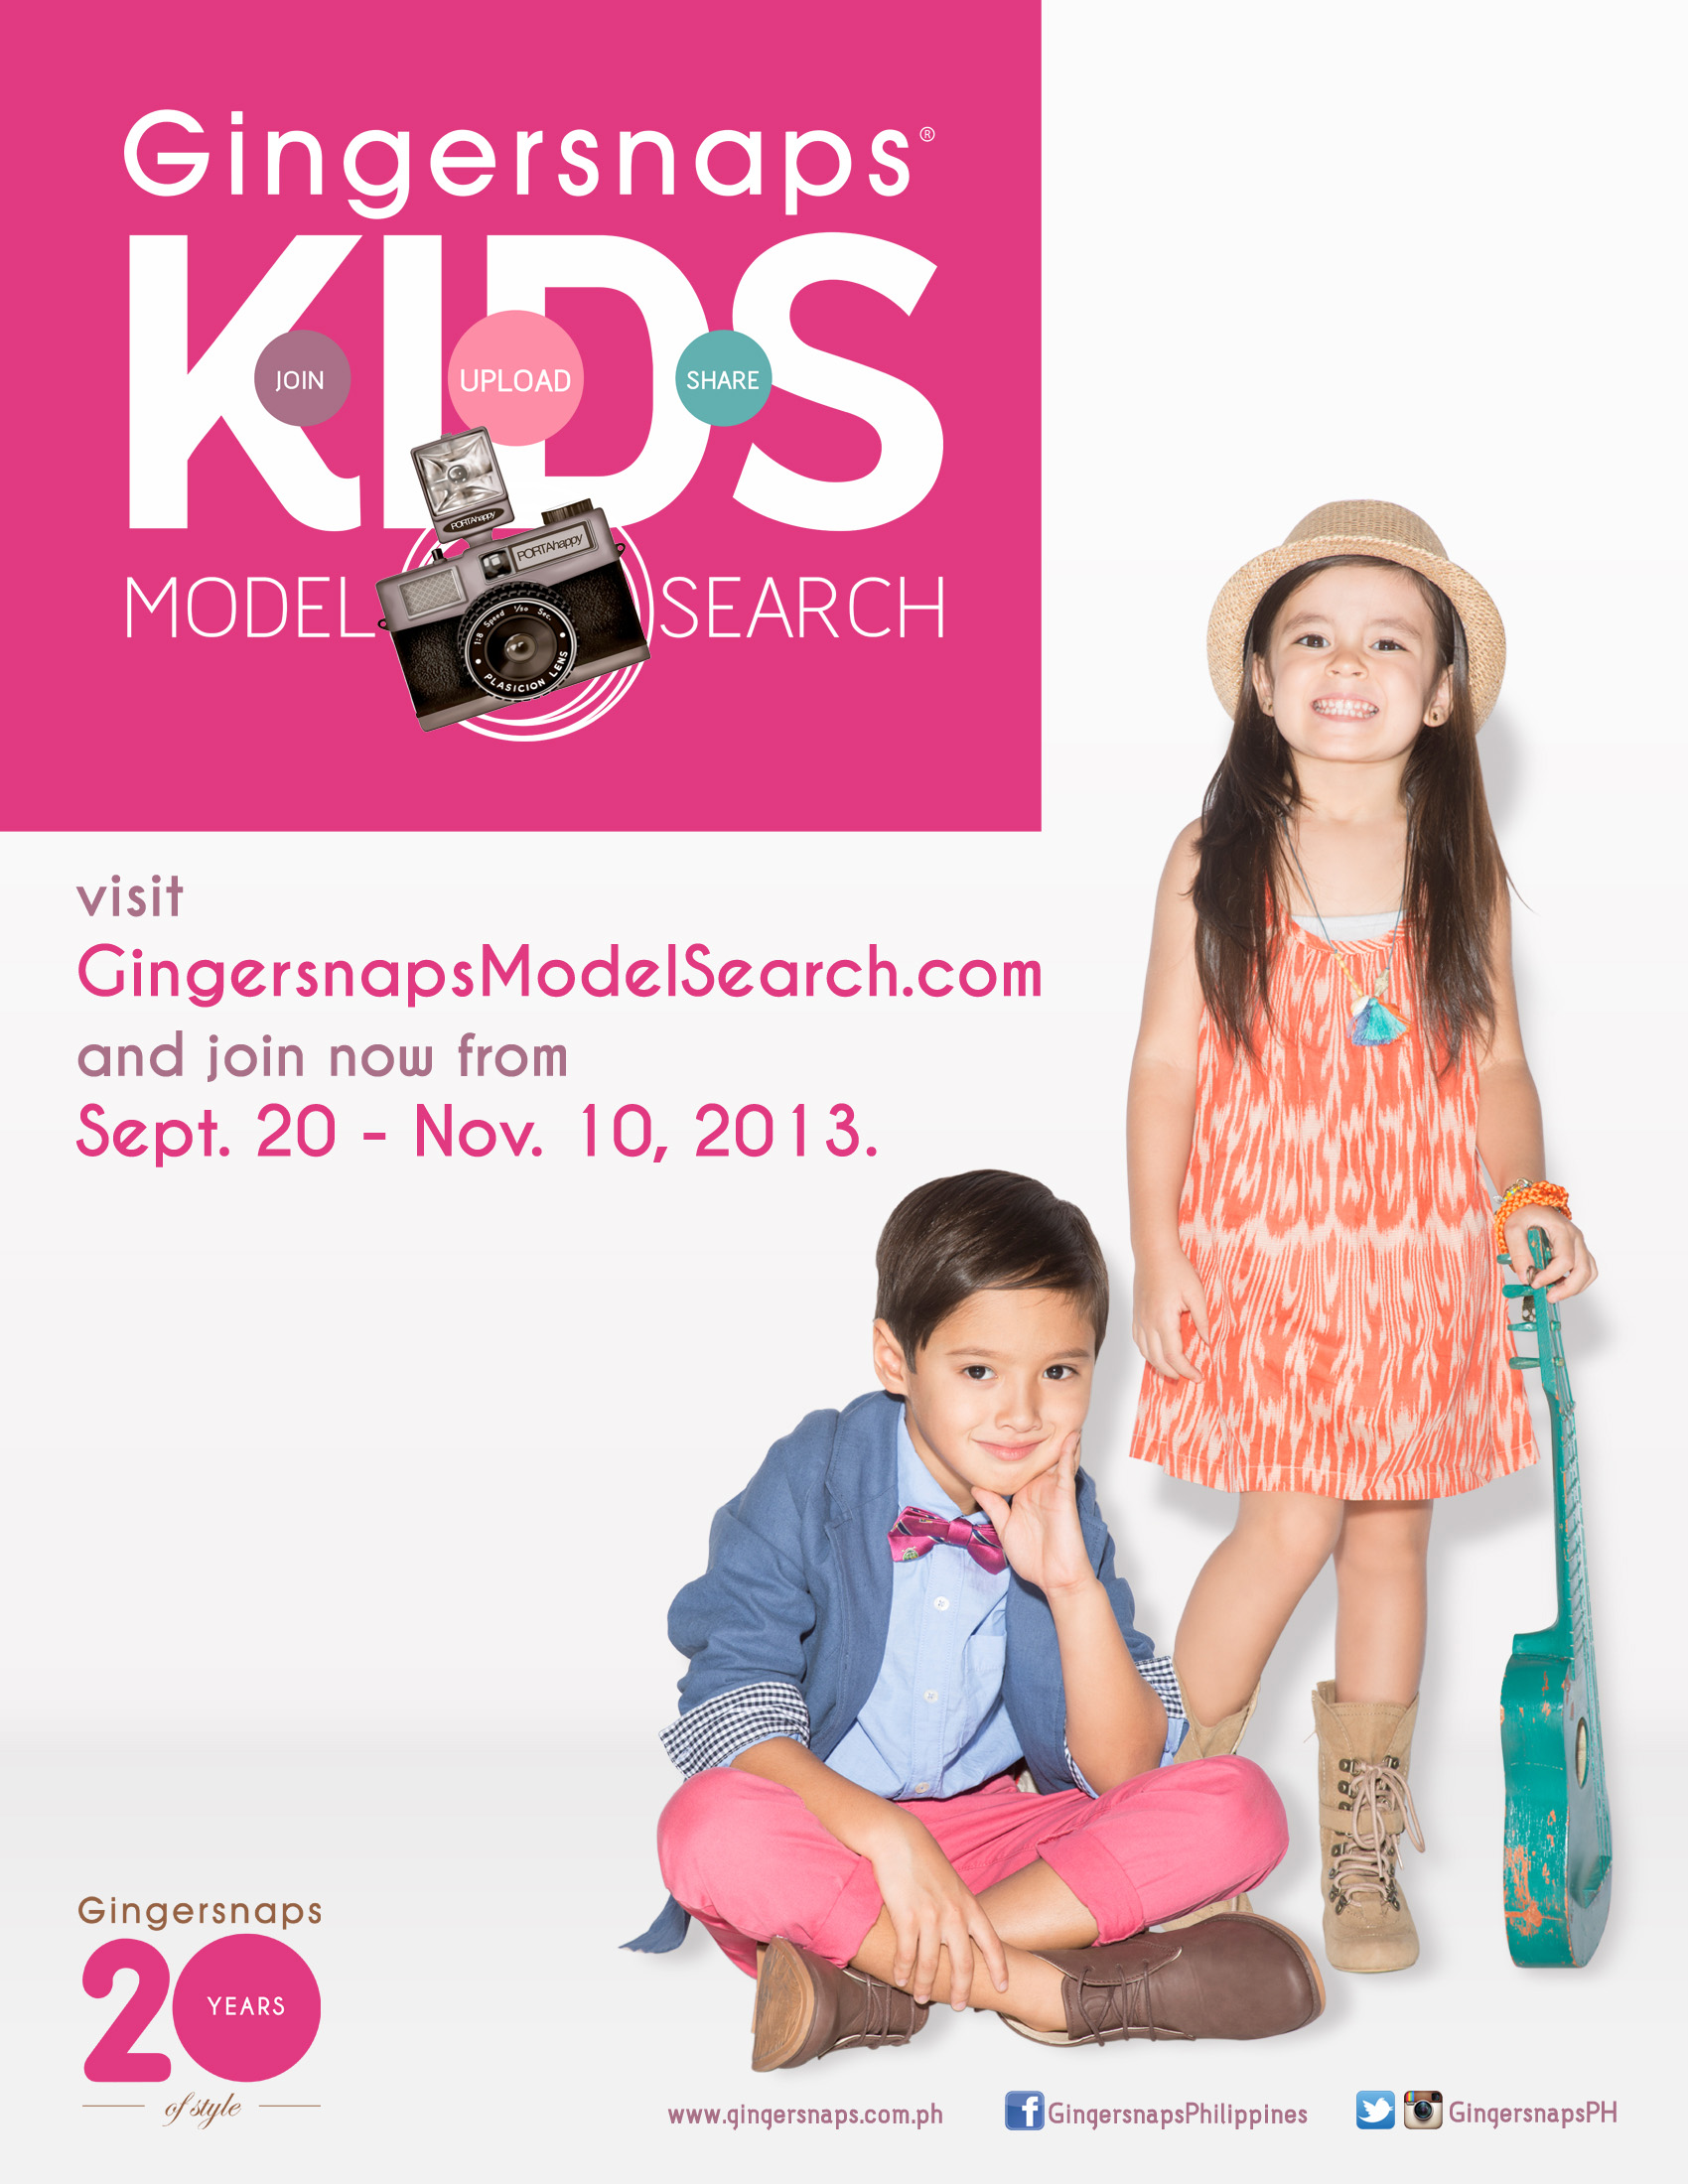 Gingersnaps is looking for kids to become a model